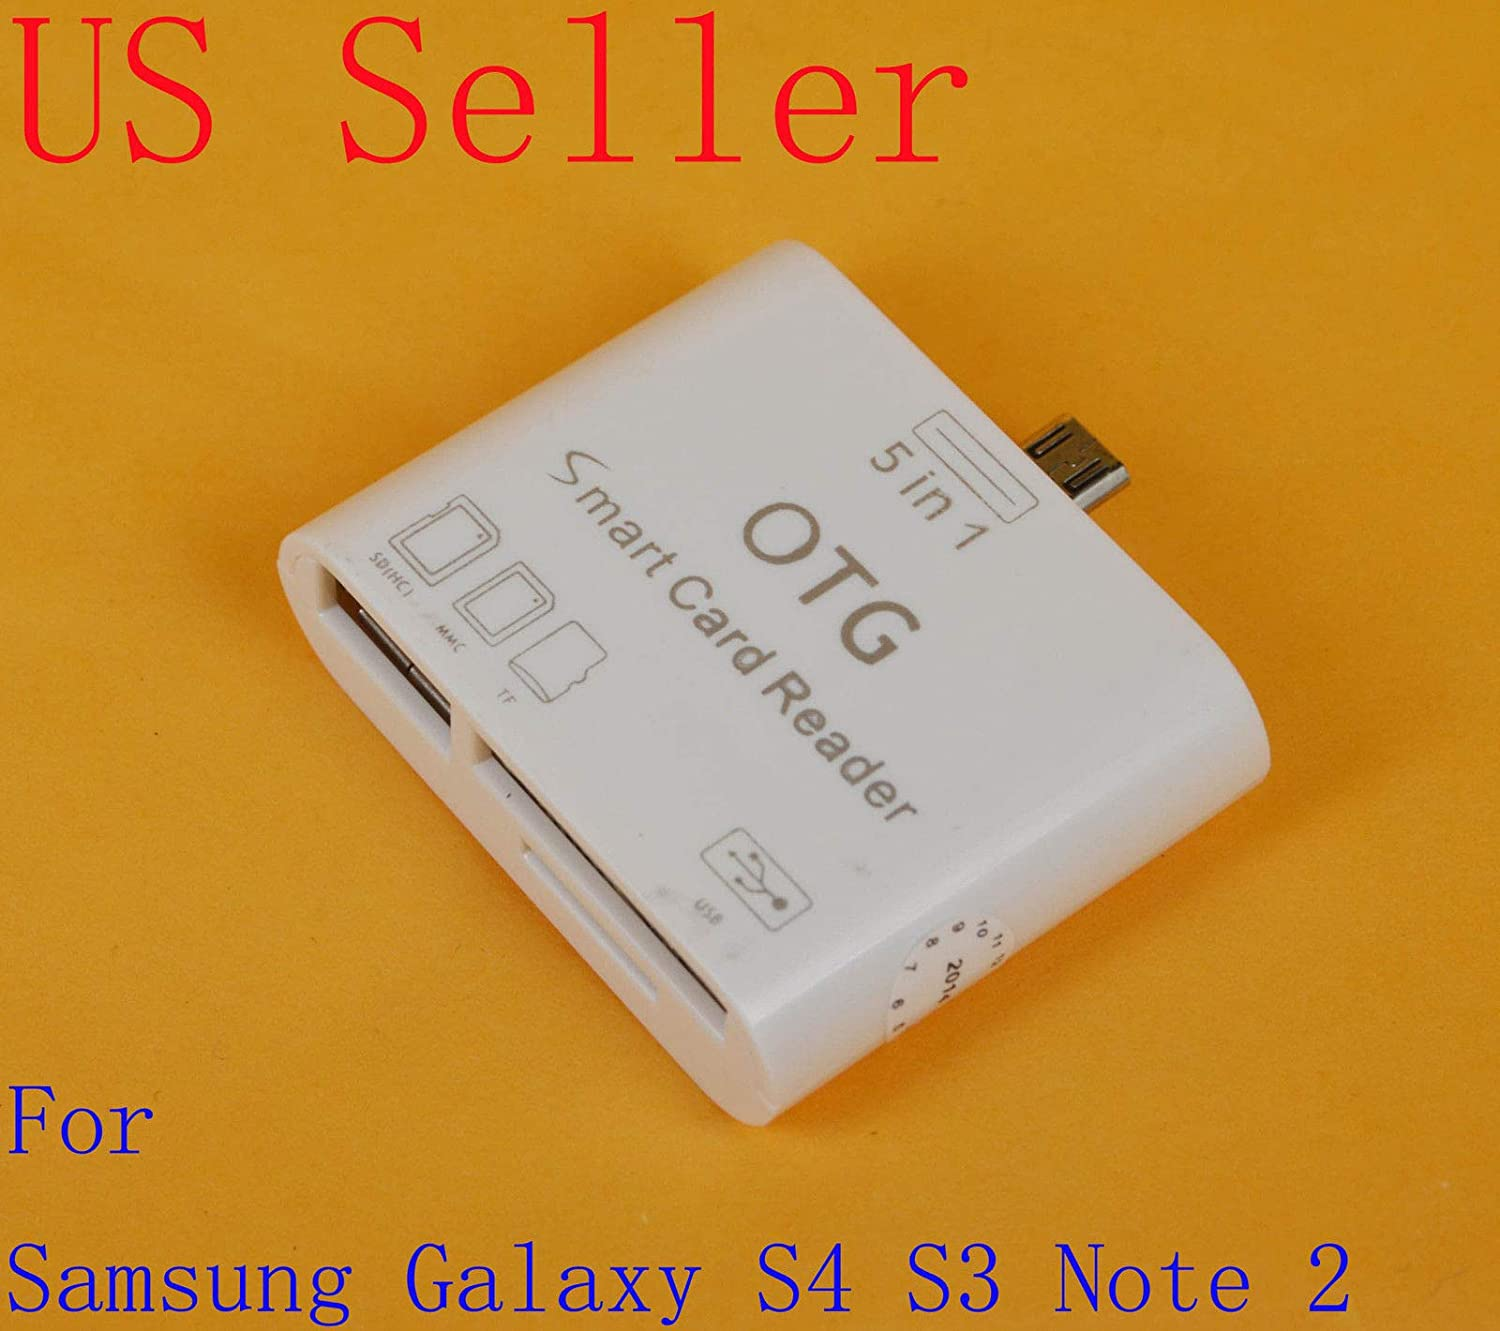 yan 5 in 1 USB Card Reader OTG Connection Kit Adapter for Samsung Galaxy Note 2 S4